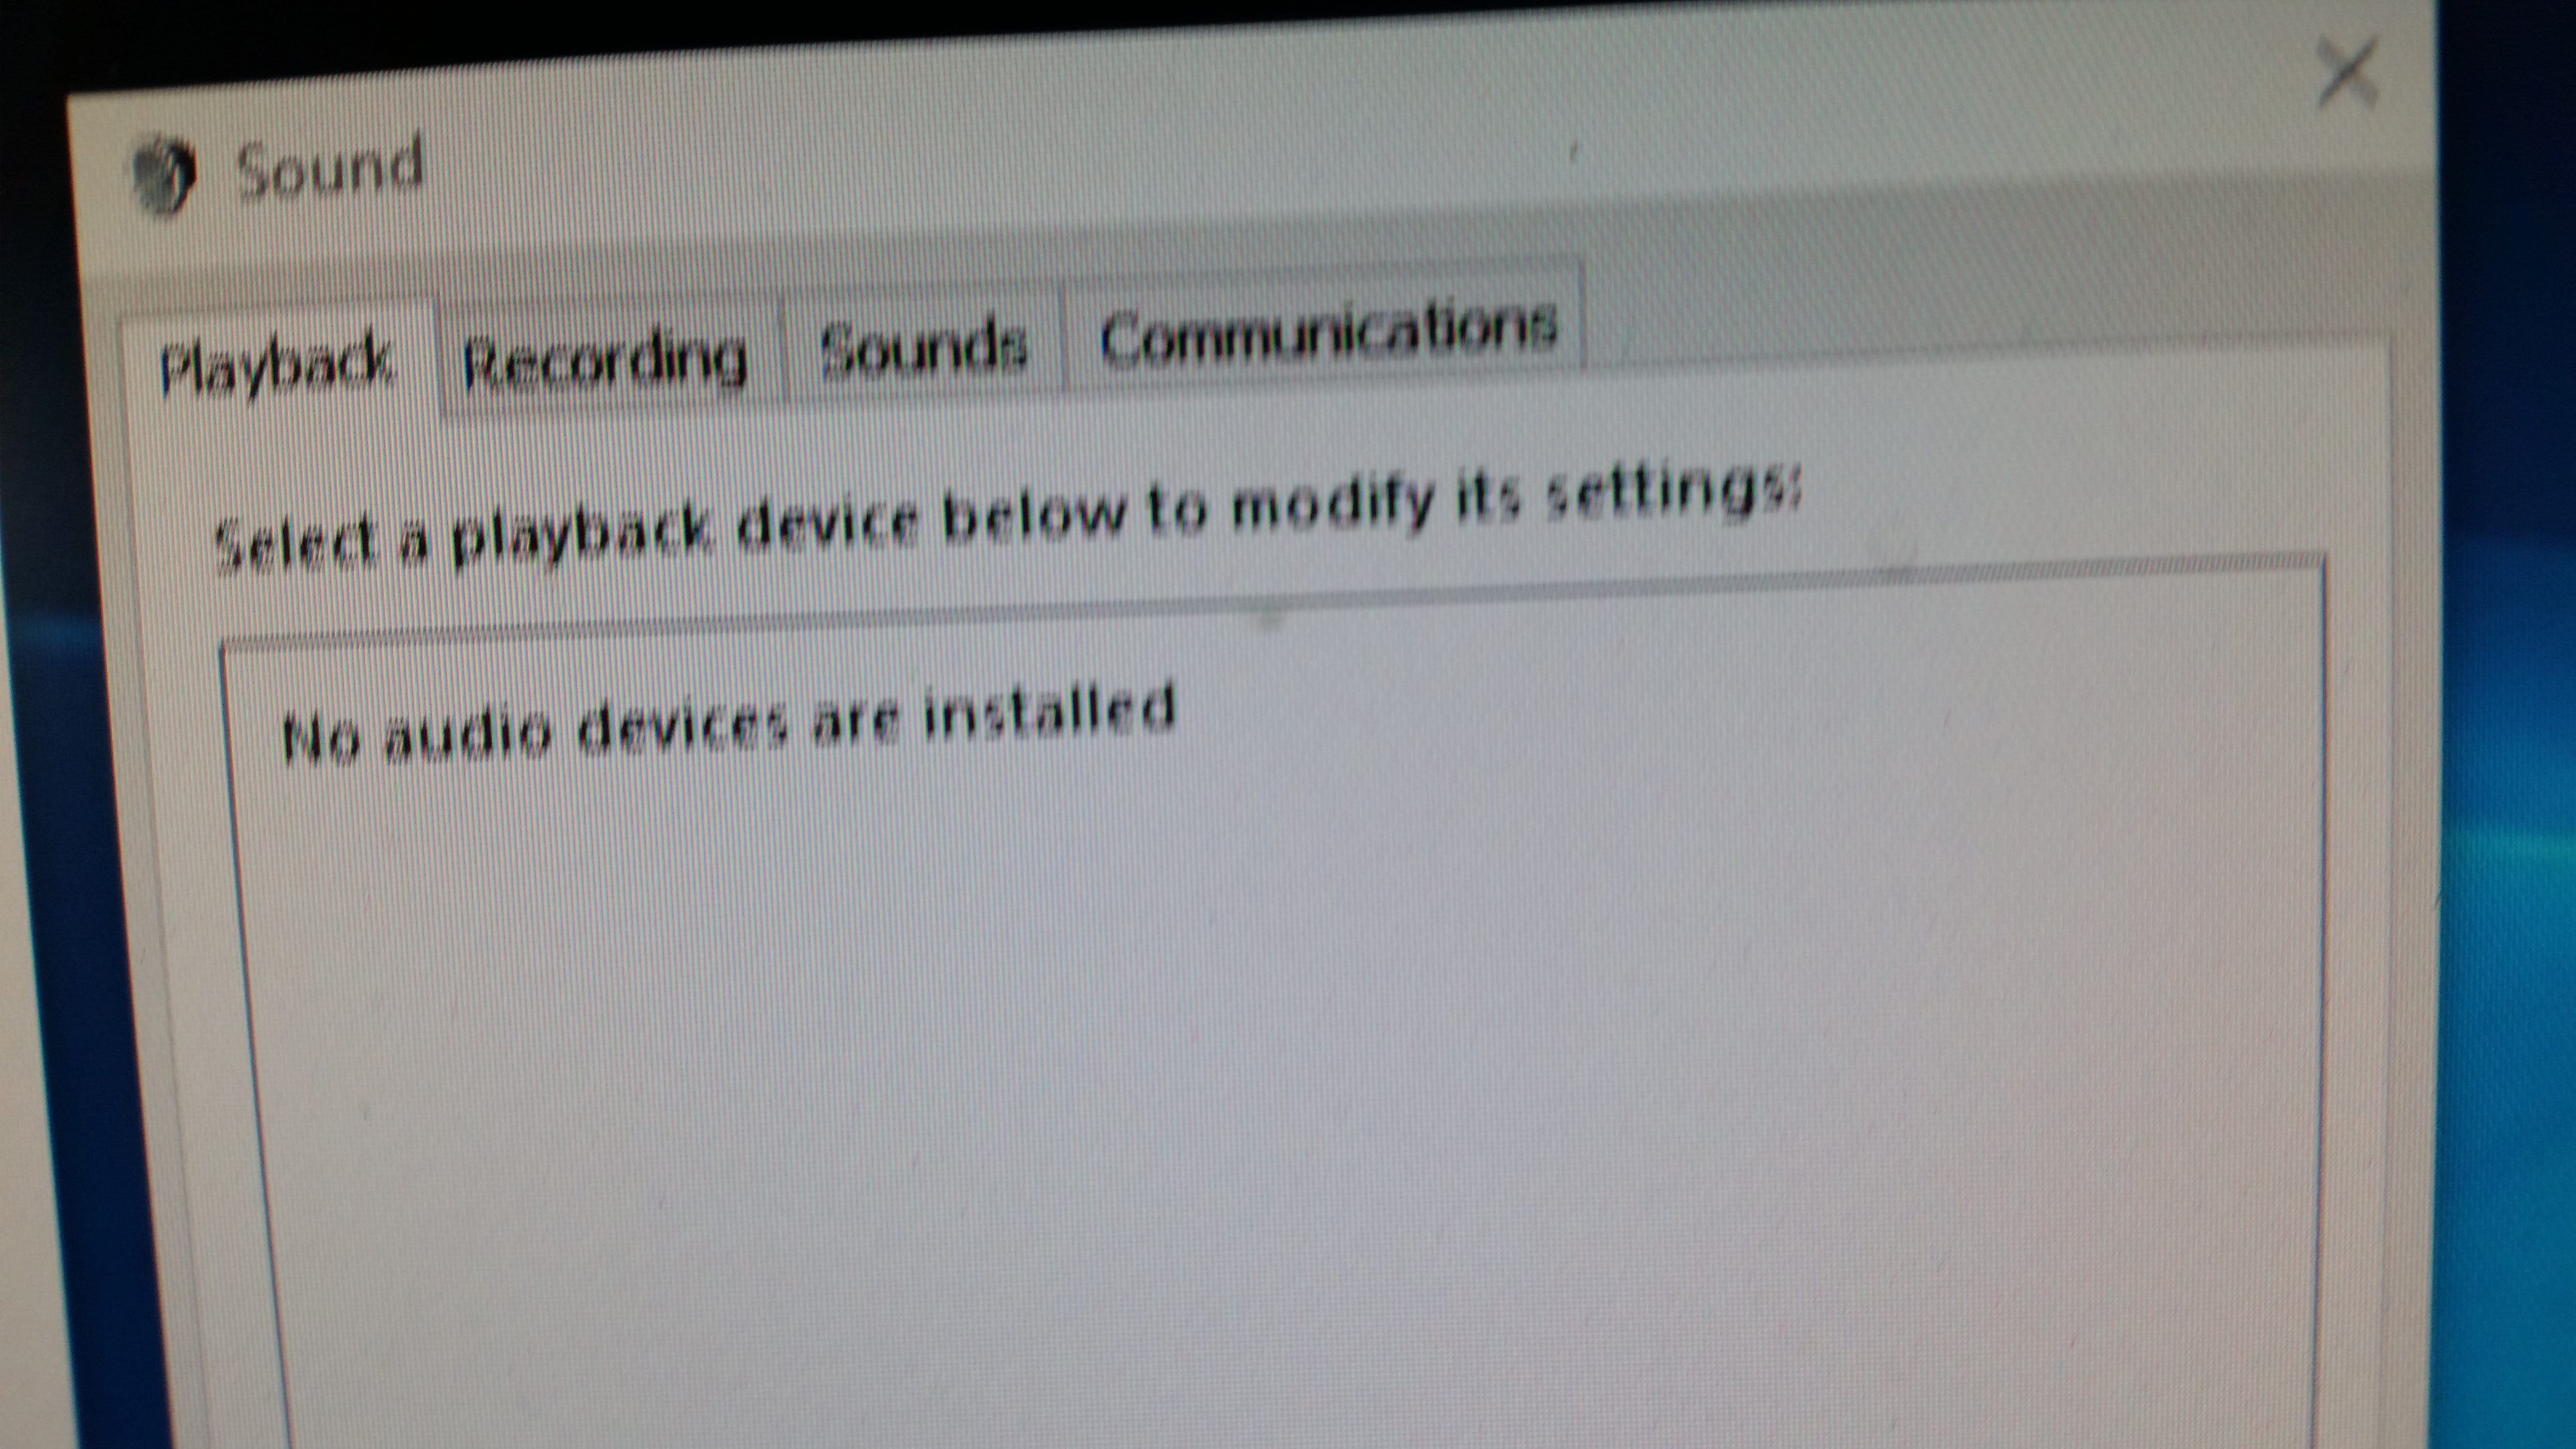 RCA W101v2 Audio stopped after a Windows 10 update